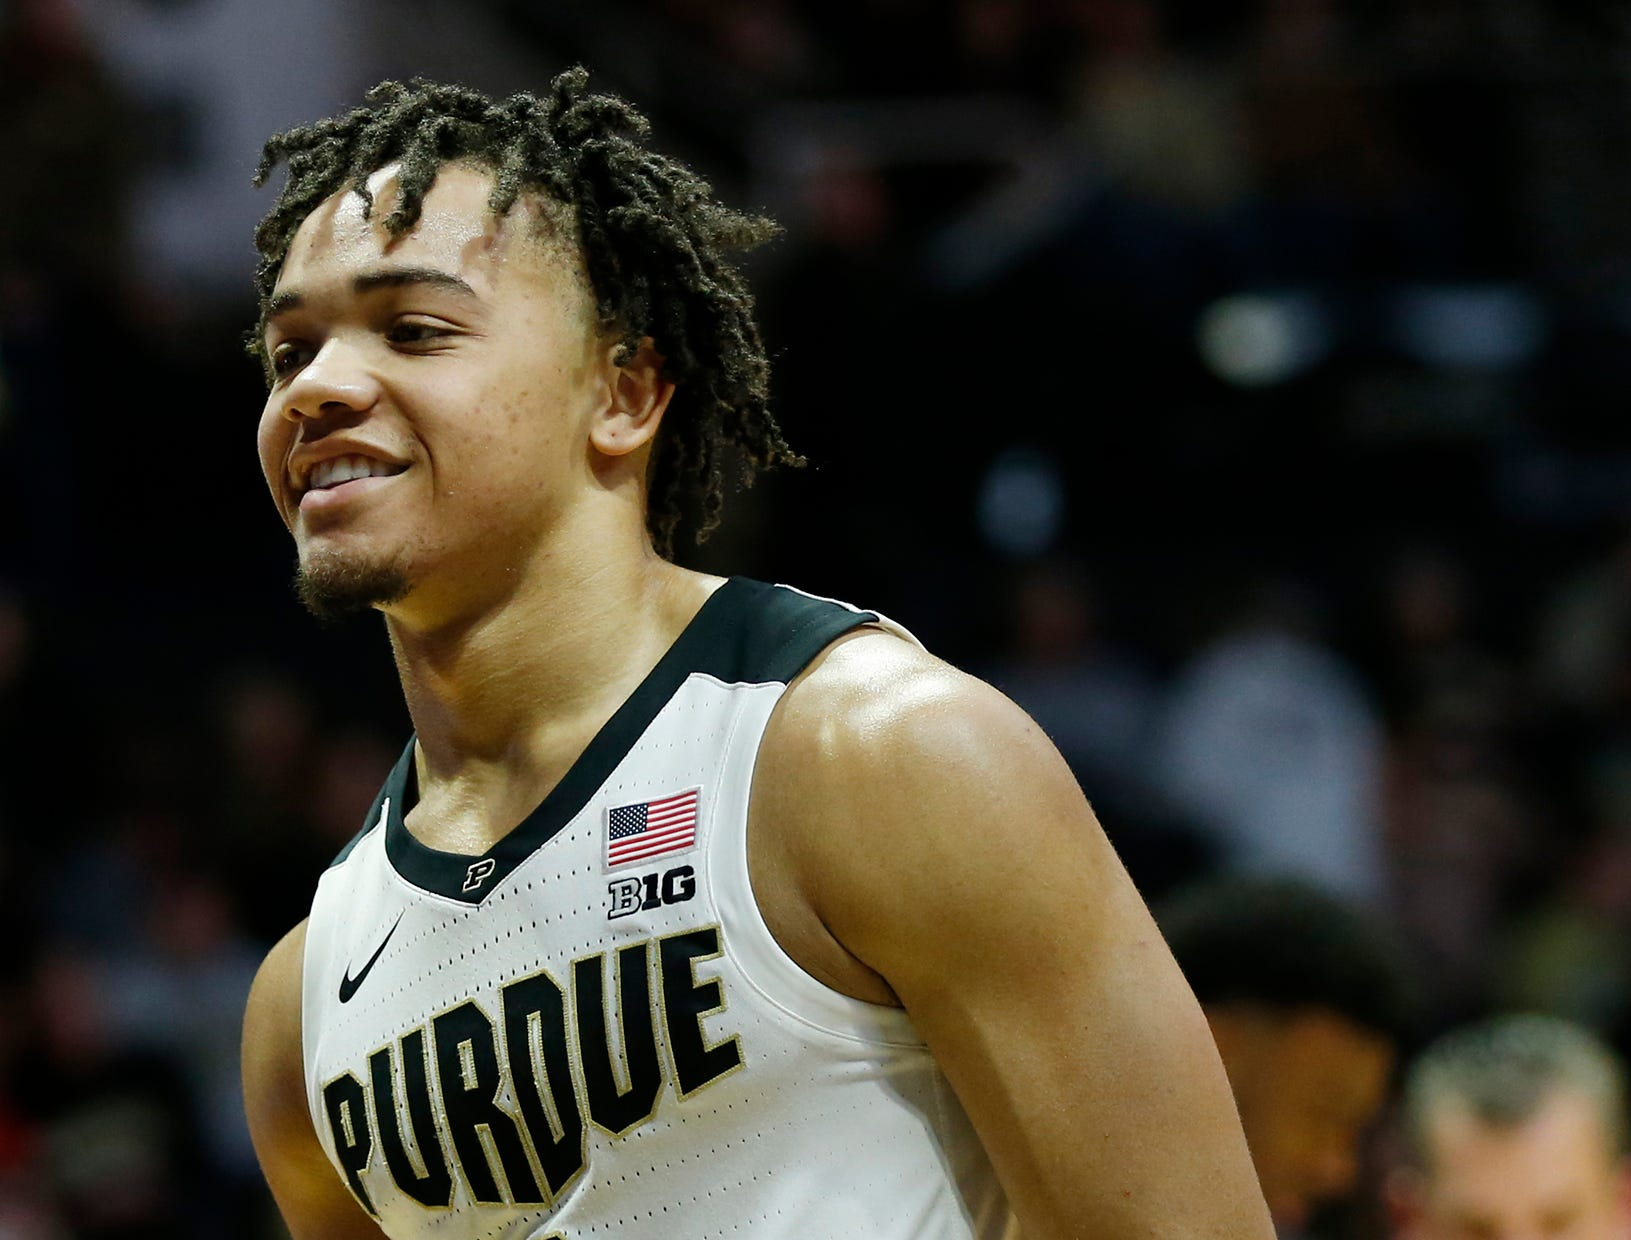 Carsen Edwards of Purdue smiles after the Boilermakers drew a foul on Belmont in the second half Saturday, December 29, 2018, at Mackey Arena. Purdue defeated Belmont 73-62.